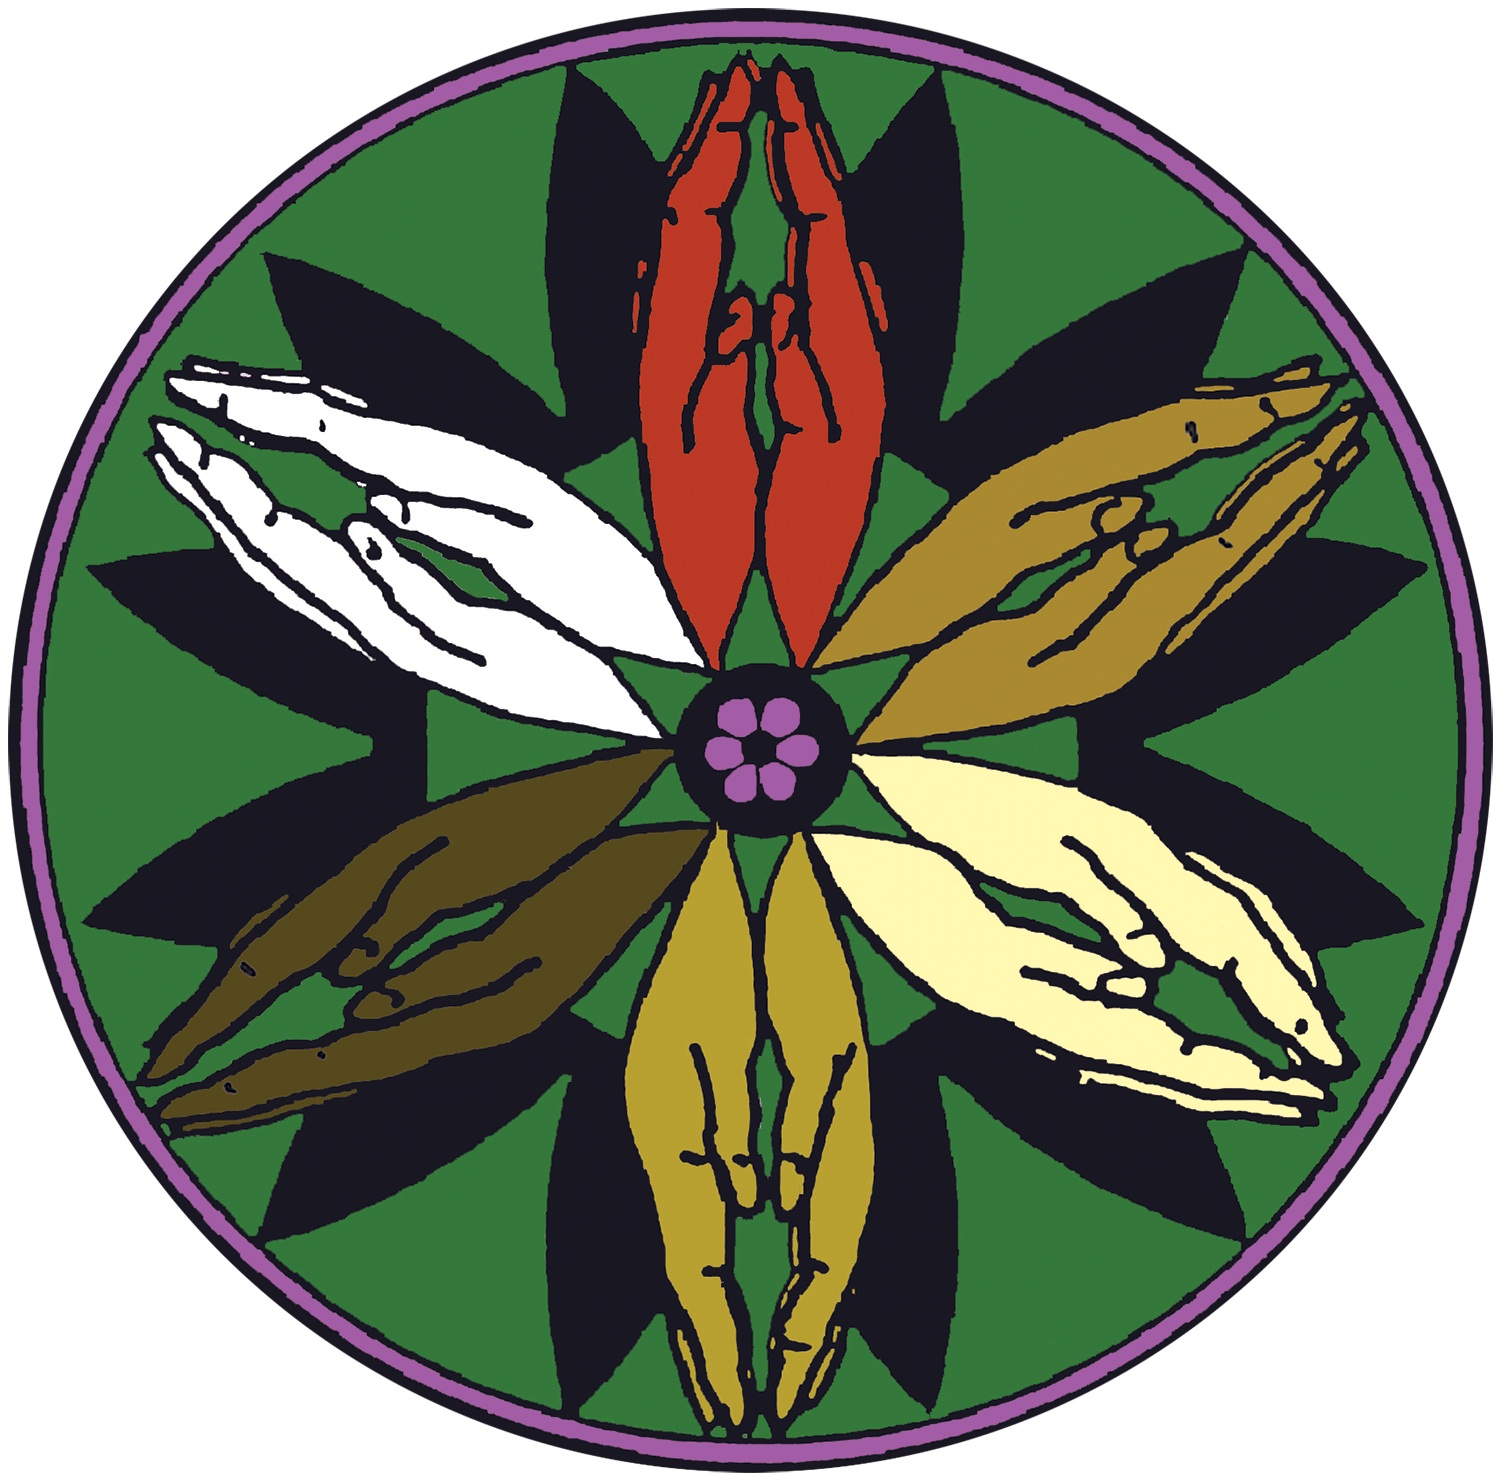 logo for Fellowship of the Least Coin - Global Movement of Prayer for Peace, Justice and Reconciliation